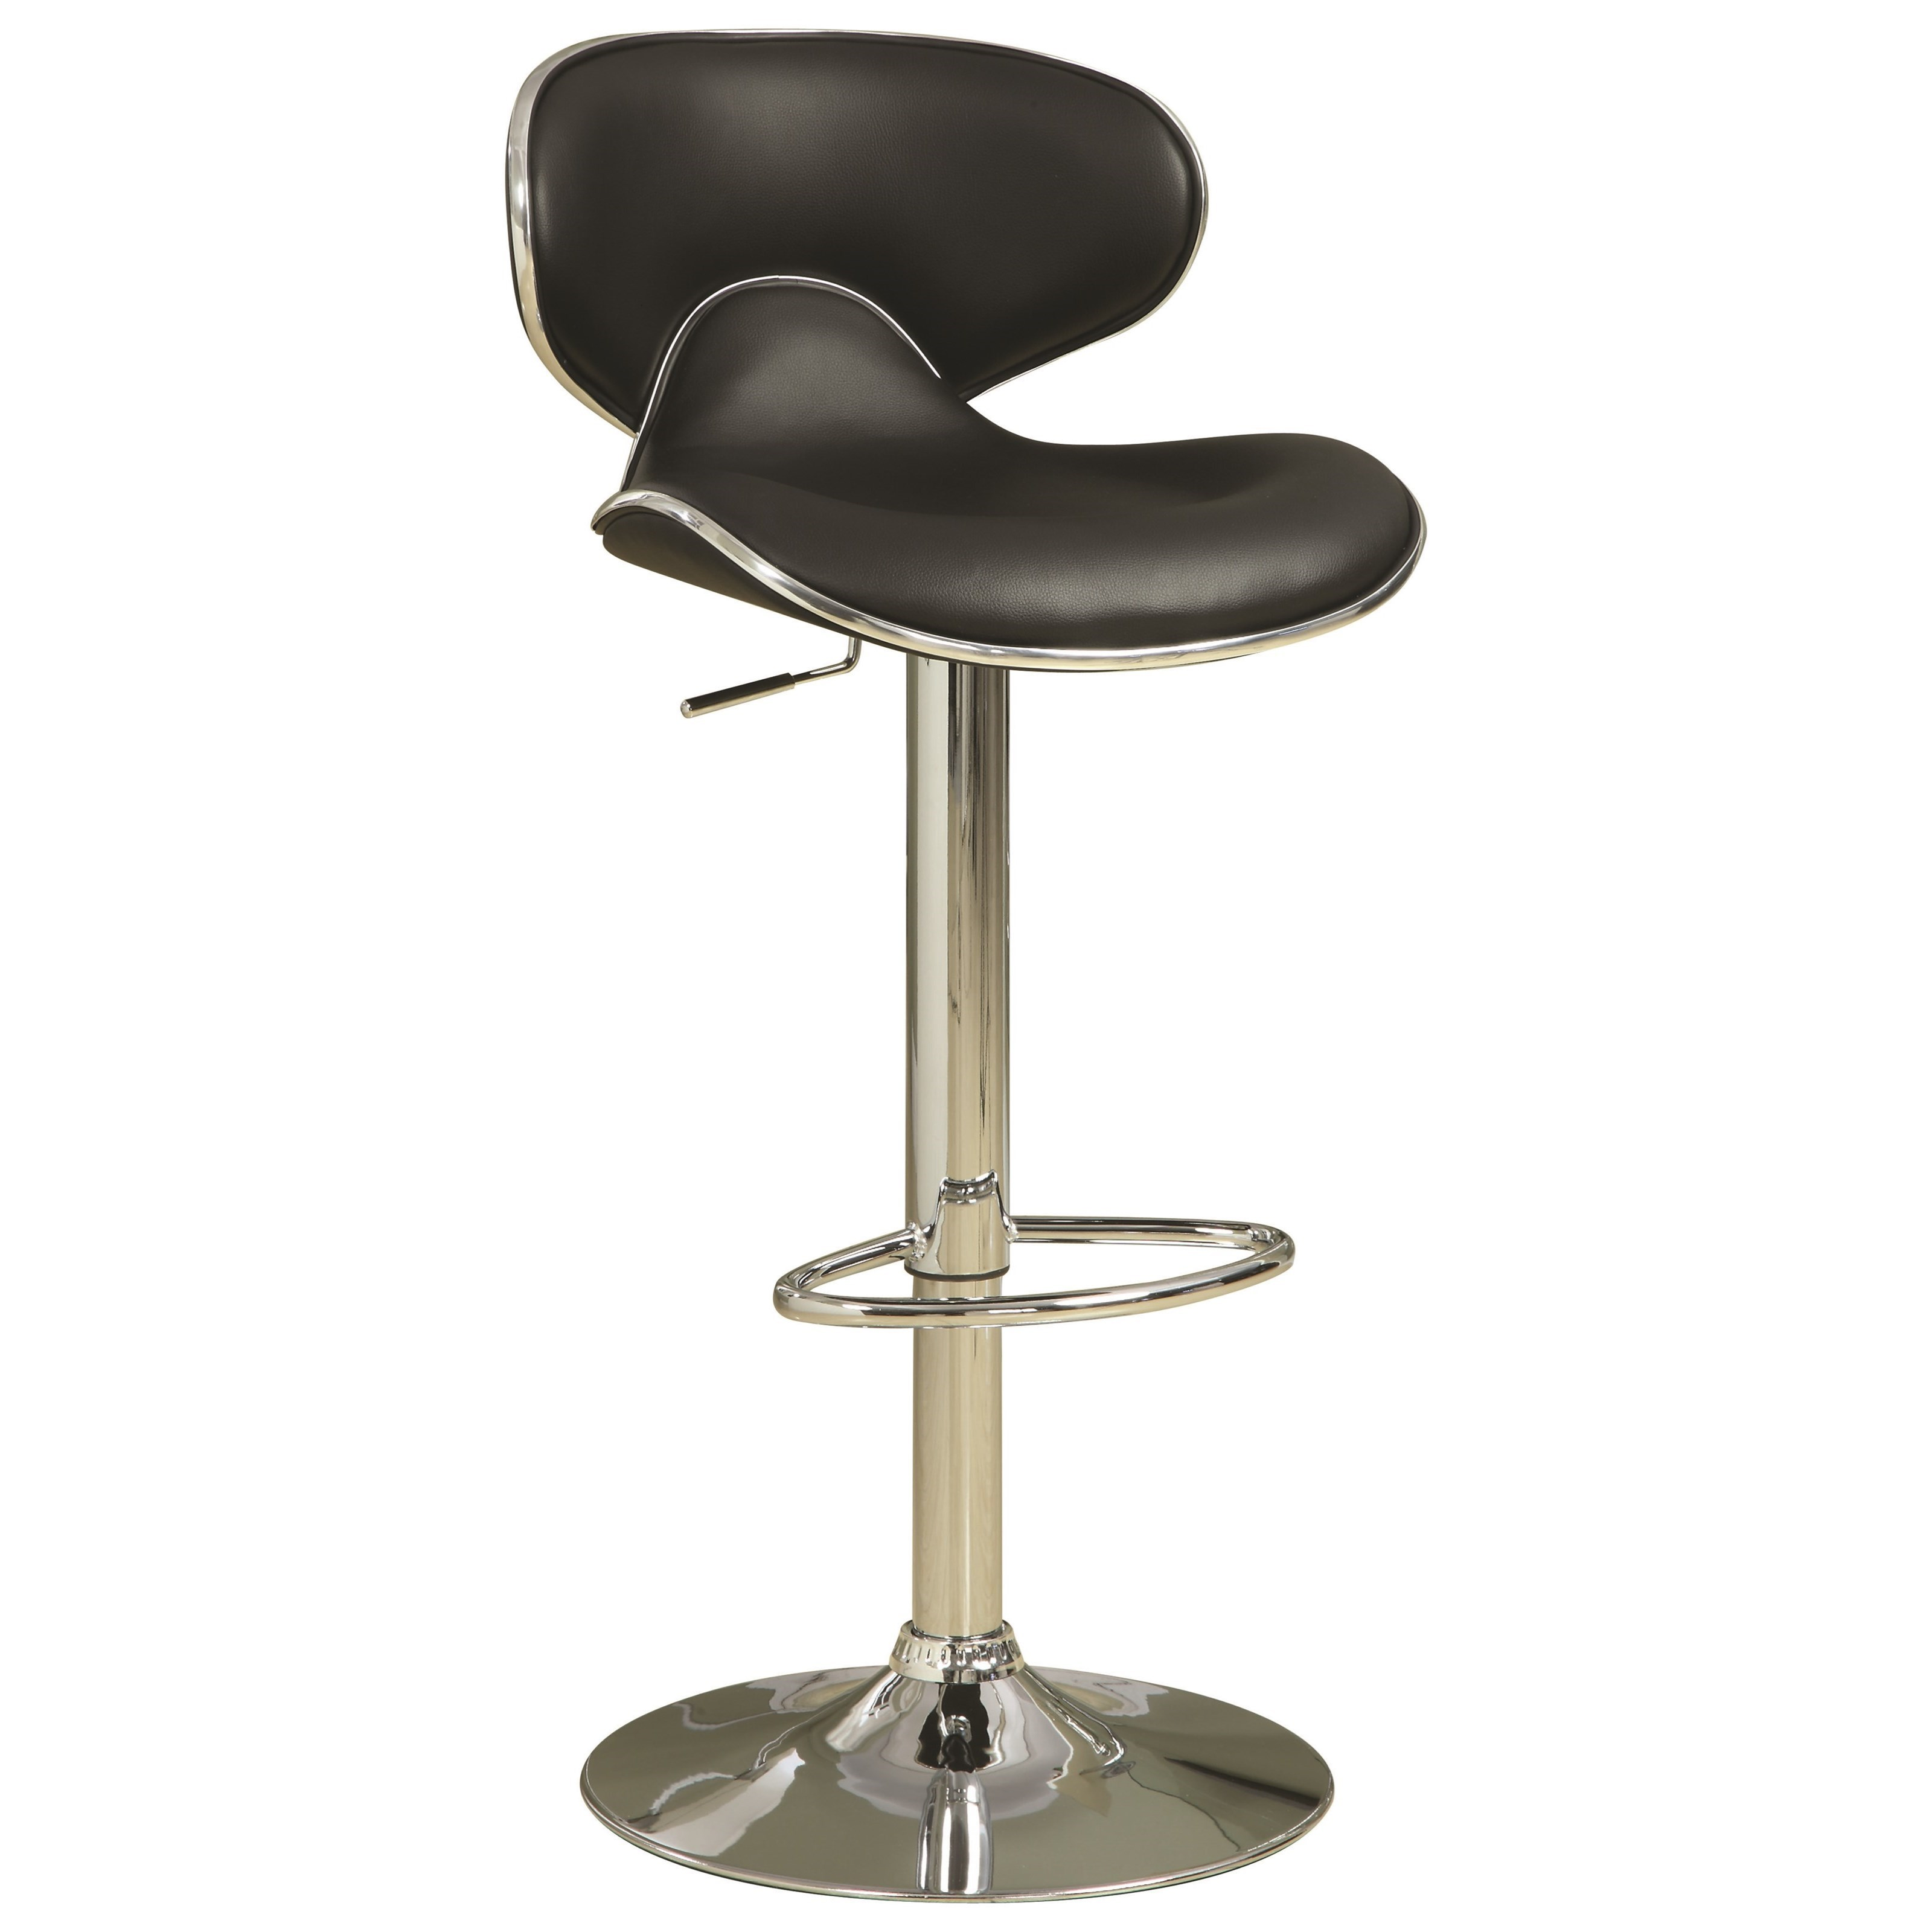 Coaster Dining Chairs And Bar Stools Adjustable Height Contemporary Bar  Stool With Swivel Seat   Coaster Fine Furniture